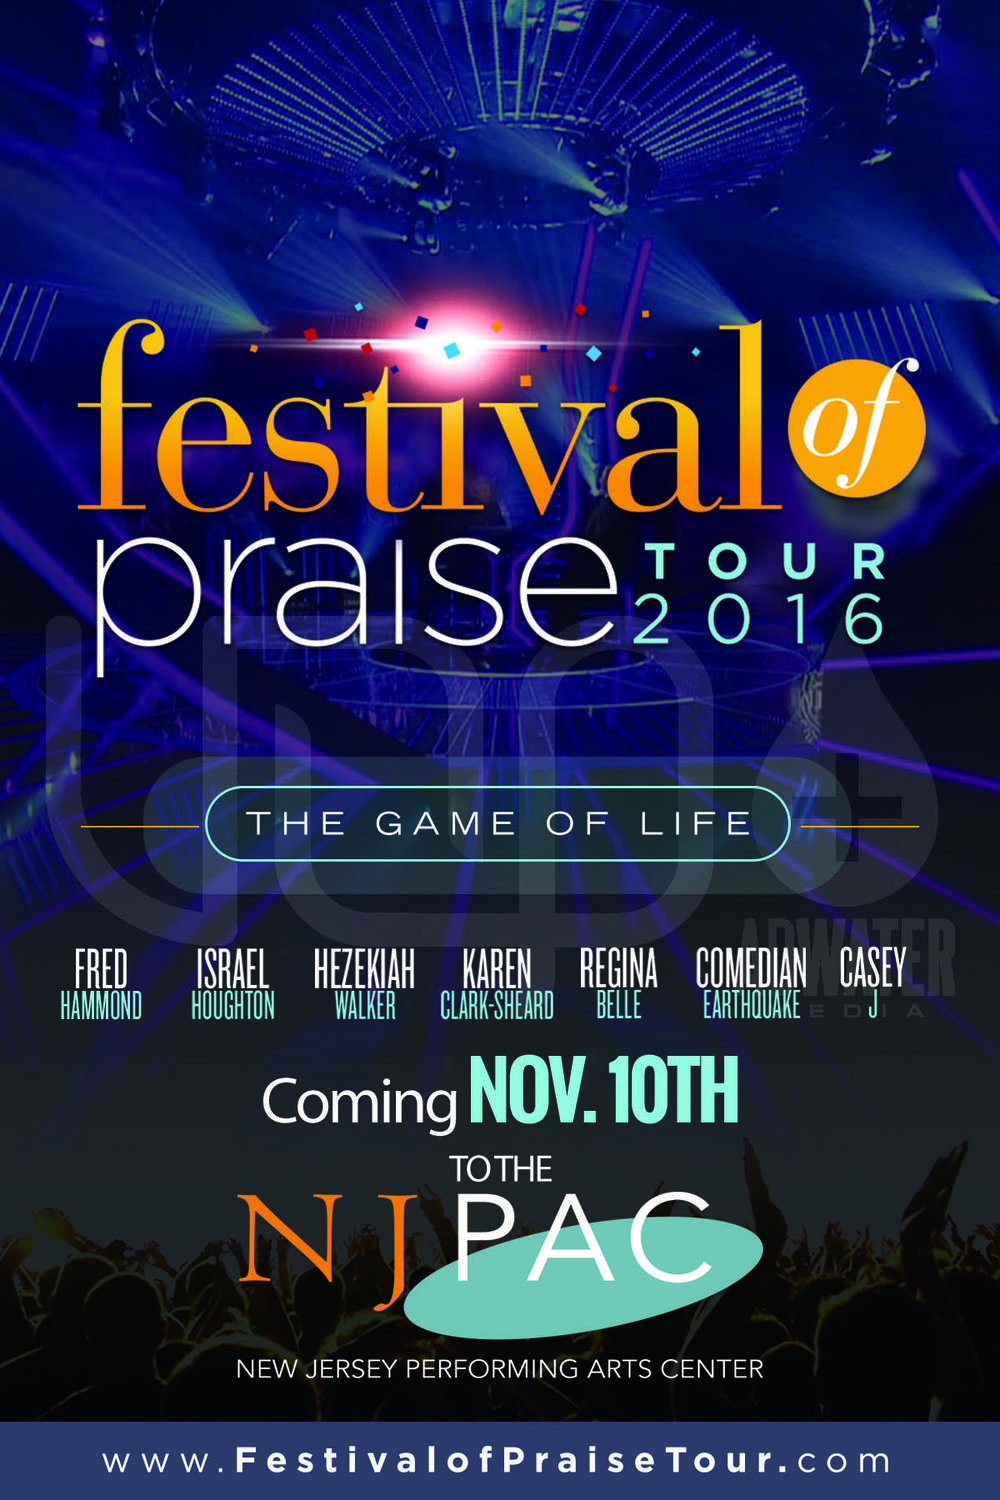 Festival of Praise Tour 2016 (Frontside) Artwork